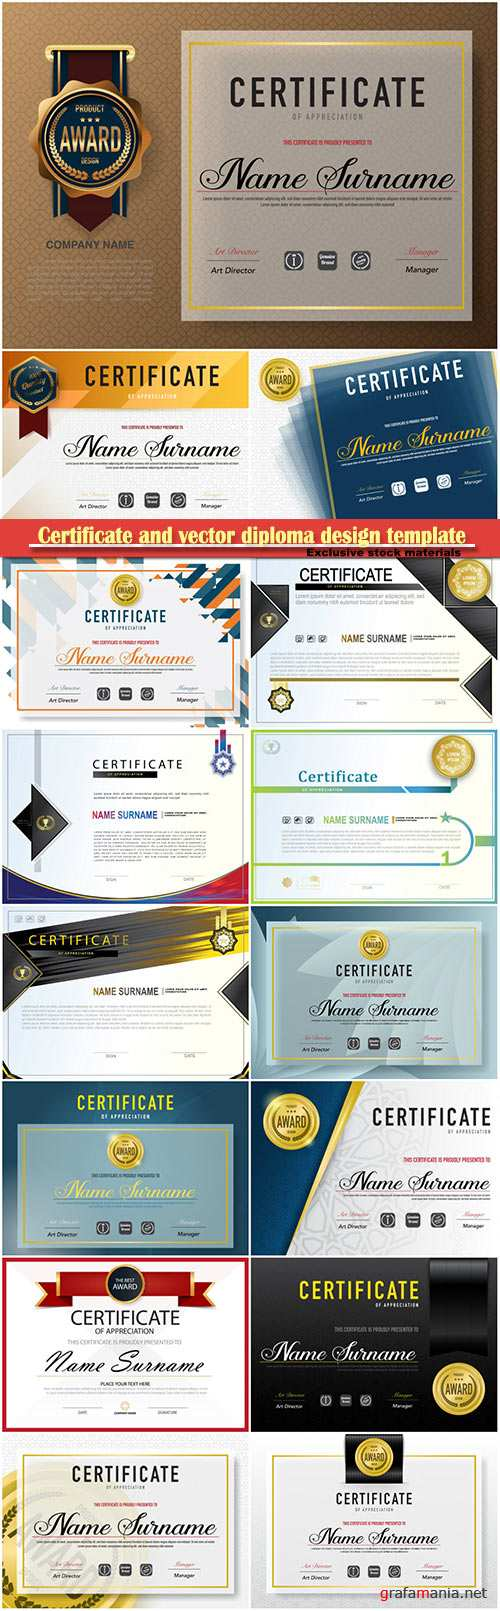 Certificate and vector diploma design template # 42